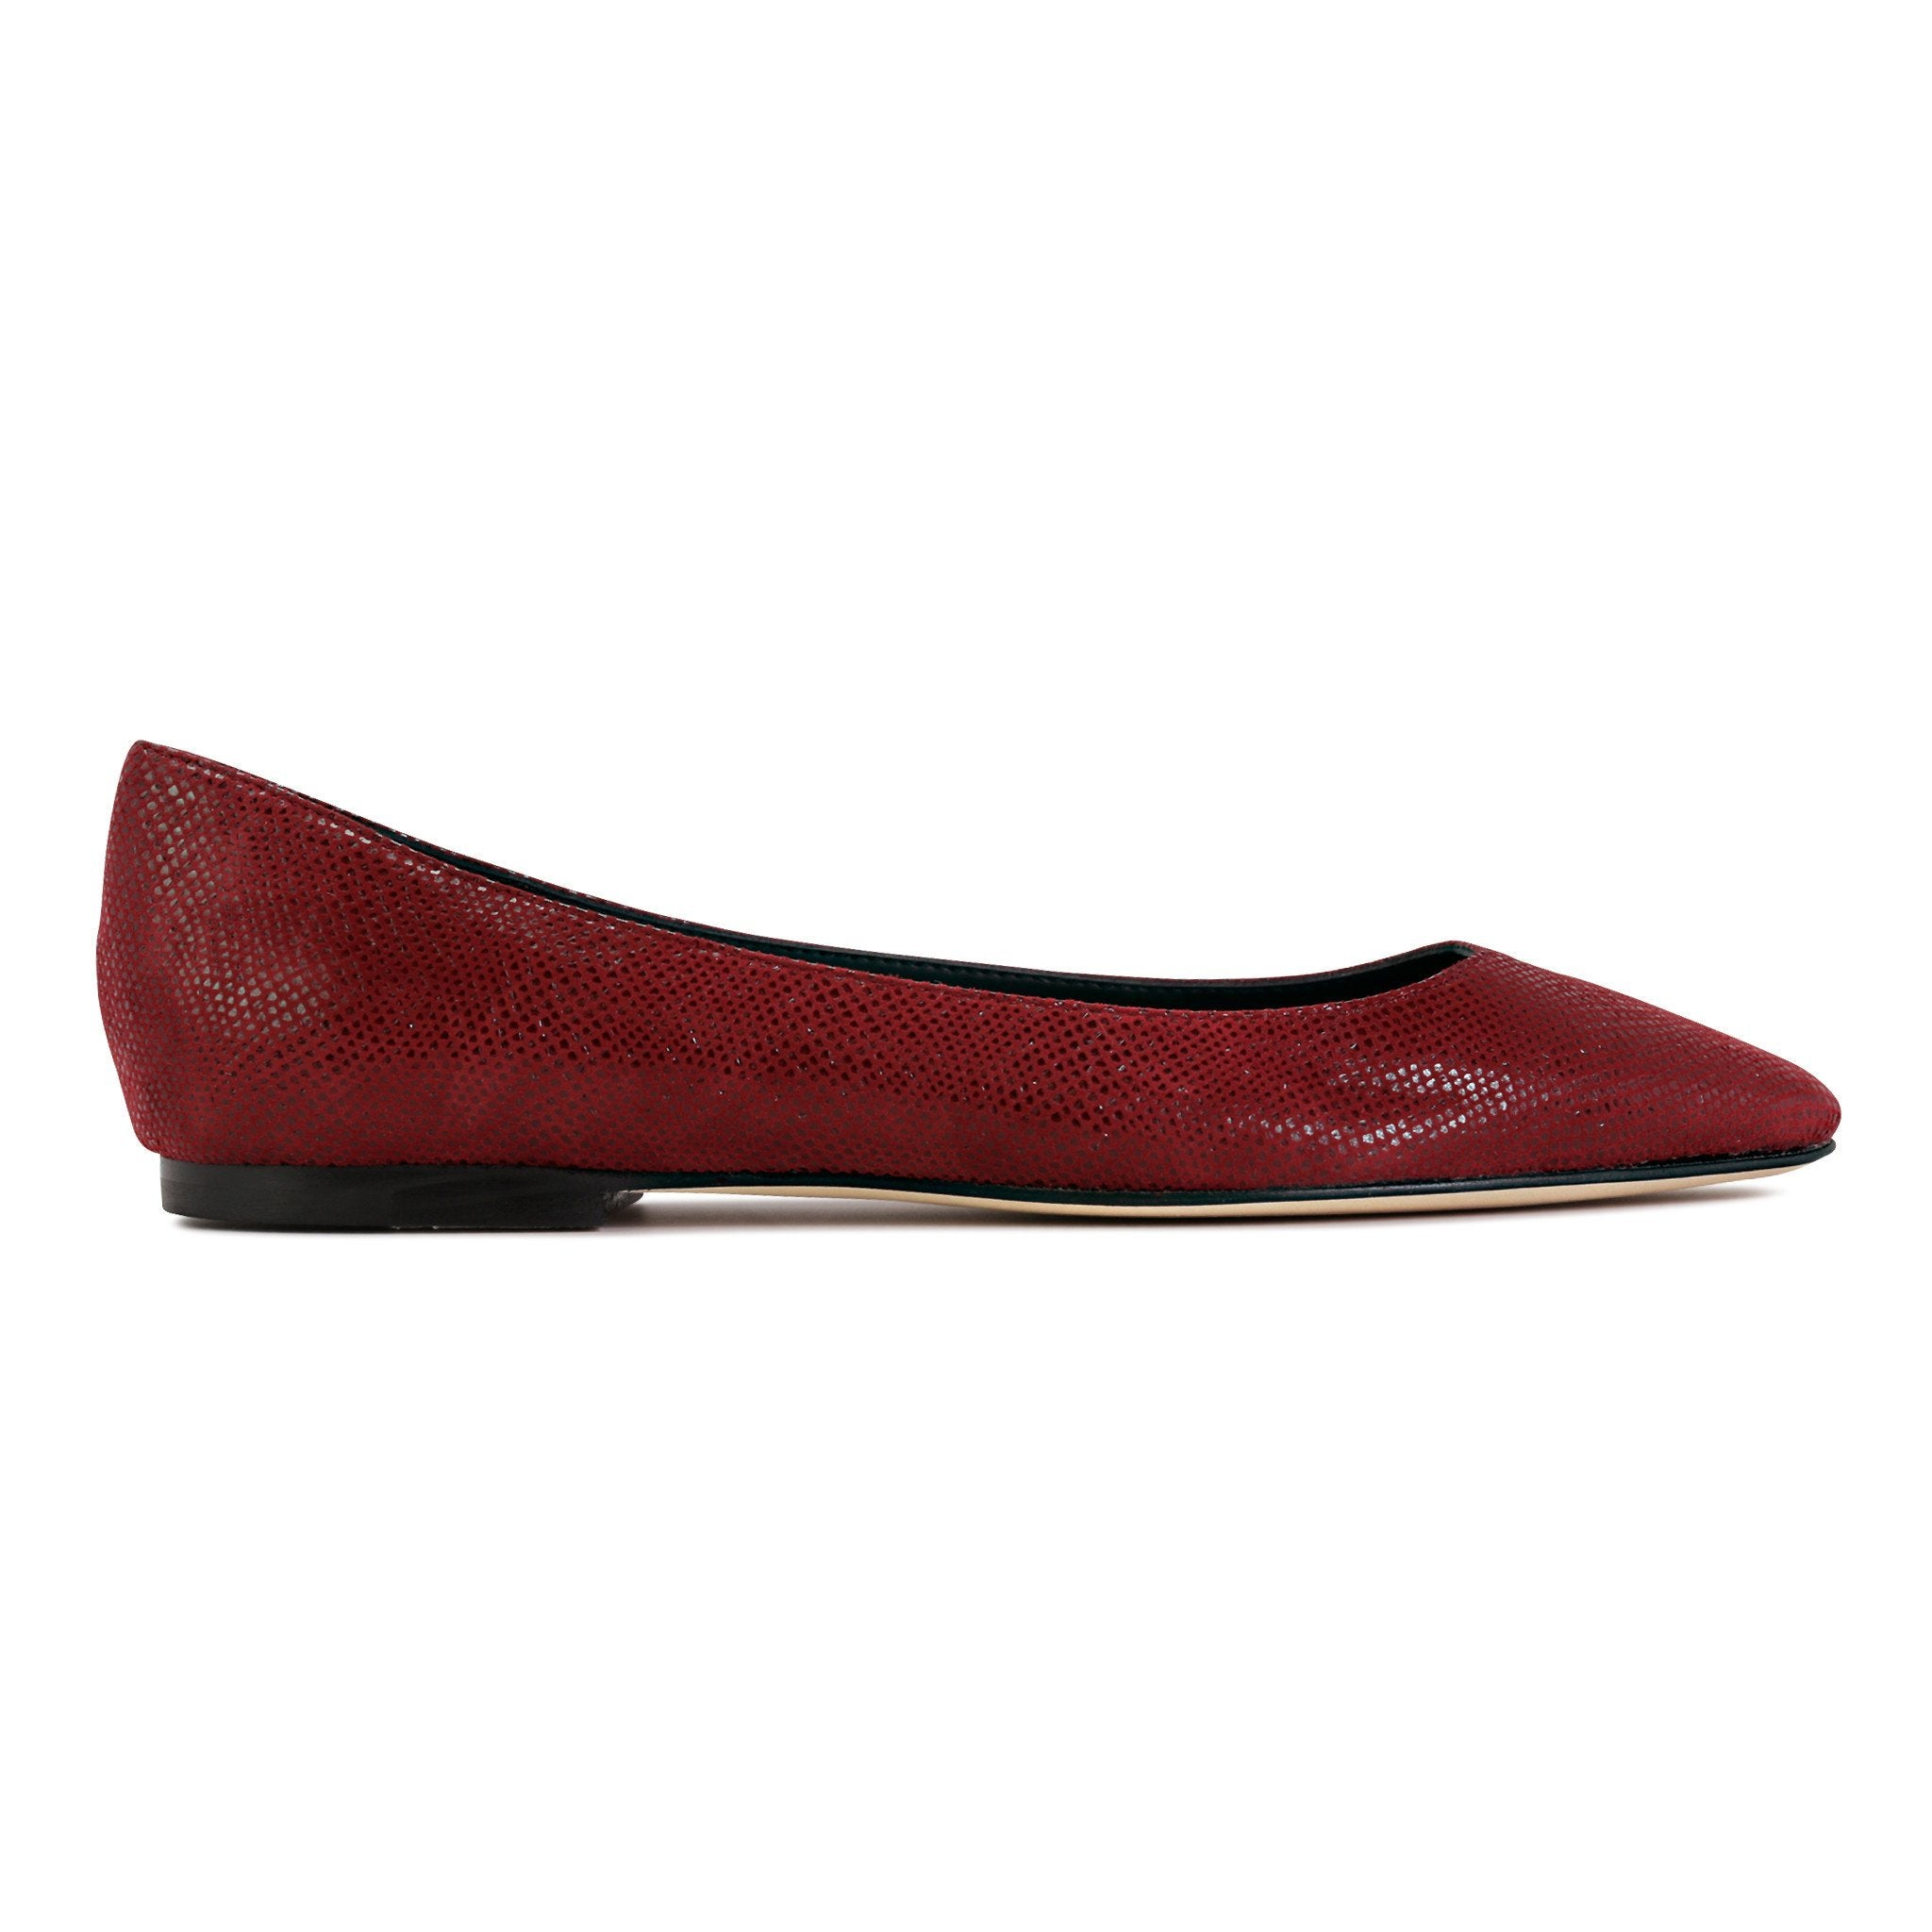 SIENA - Karung Bordeaux, VIAJIYU - Women's Hand Made Sustainable Luxury Shoes. Made in Italy. Made to Order.